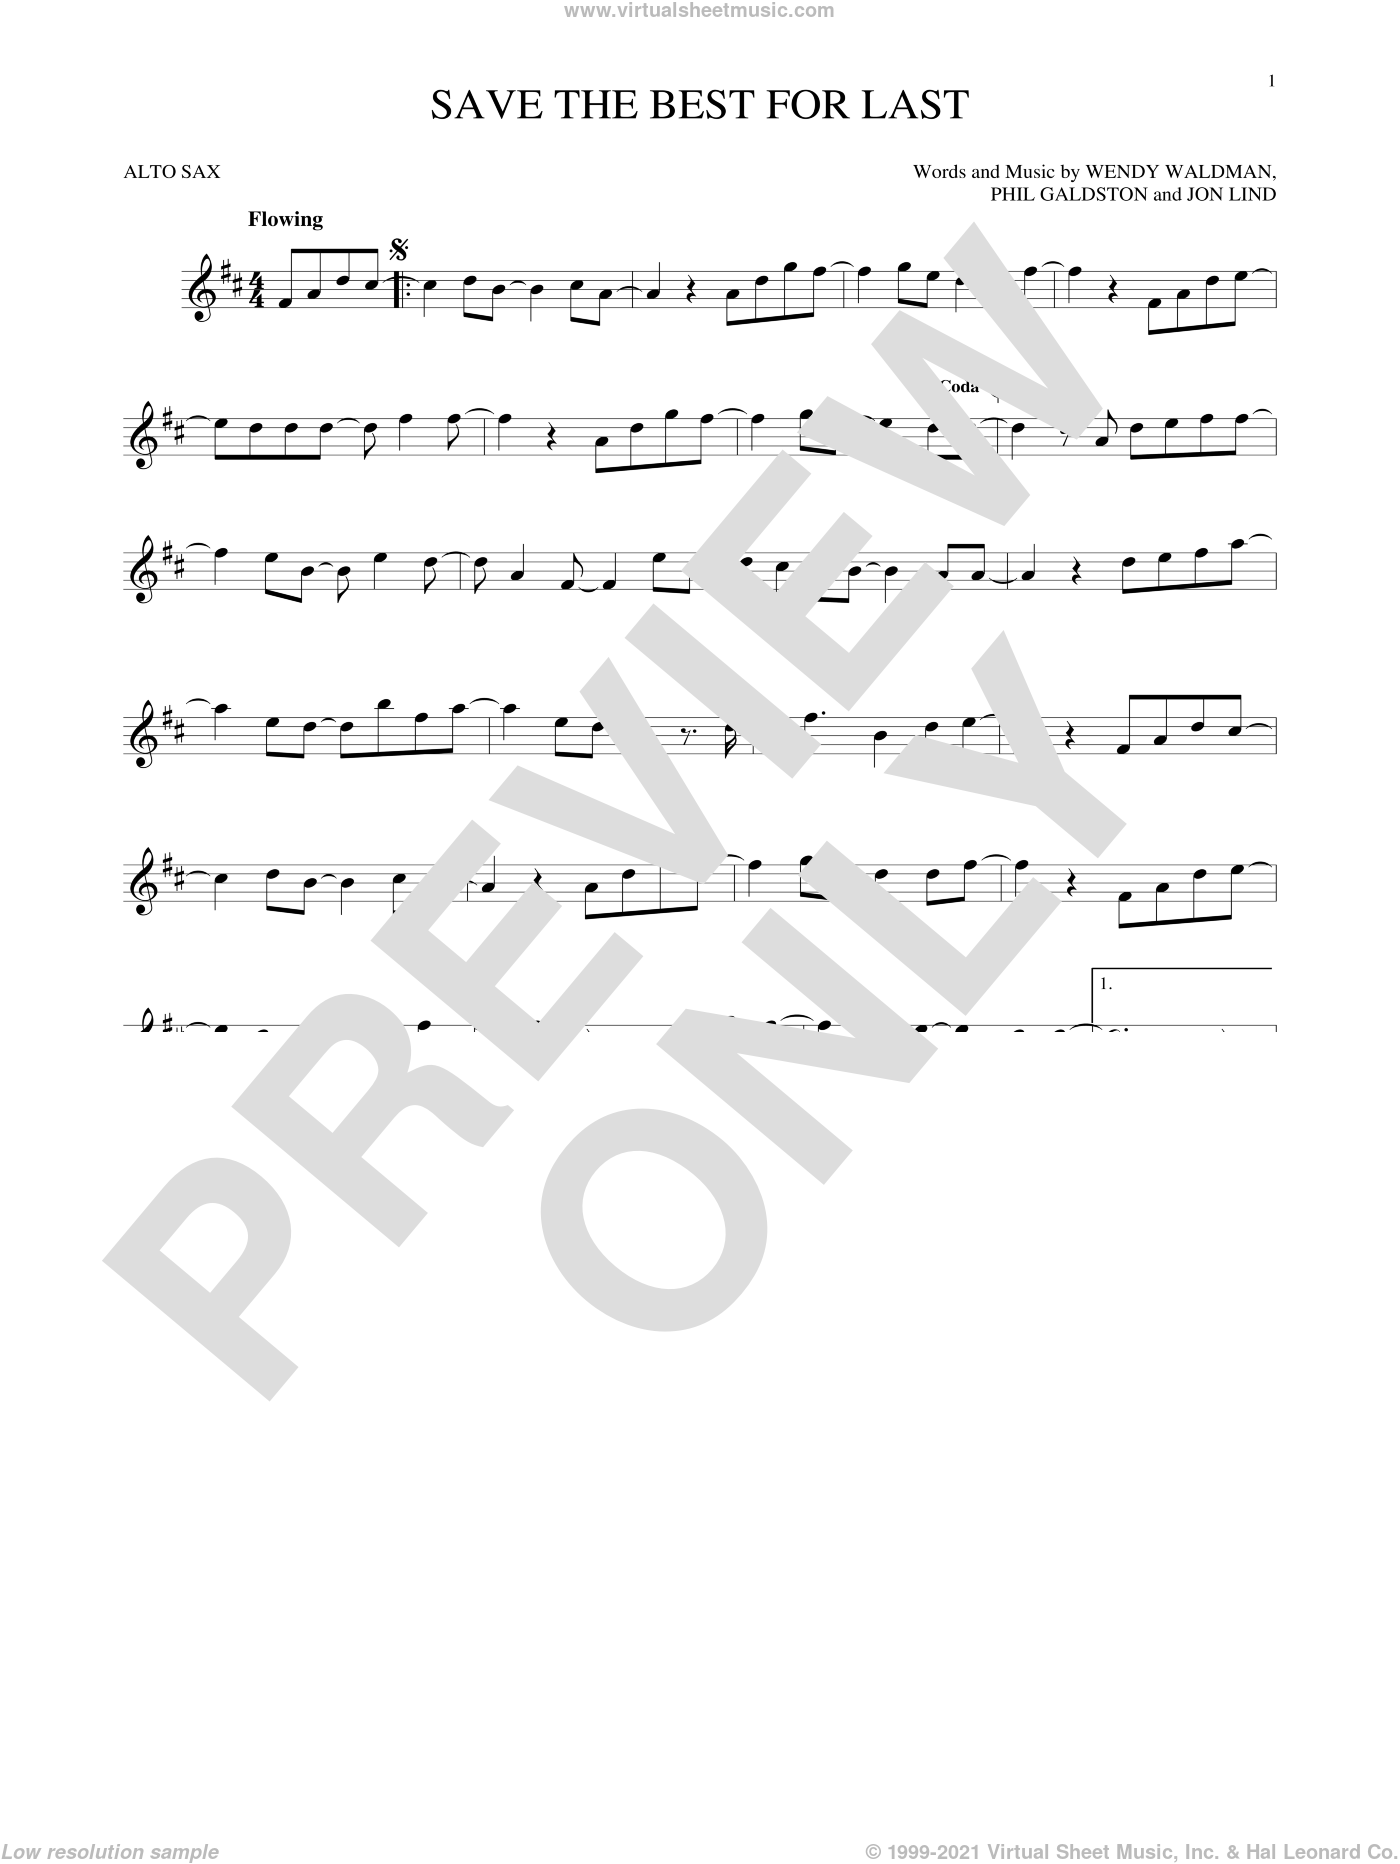 Save The Best For Last sheet music for alto saxophone solo by Vanessa Williams, Jon Lind, Phil Galdston and Wendy Waldman, intermediate skill level